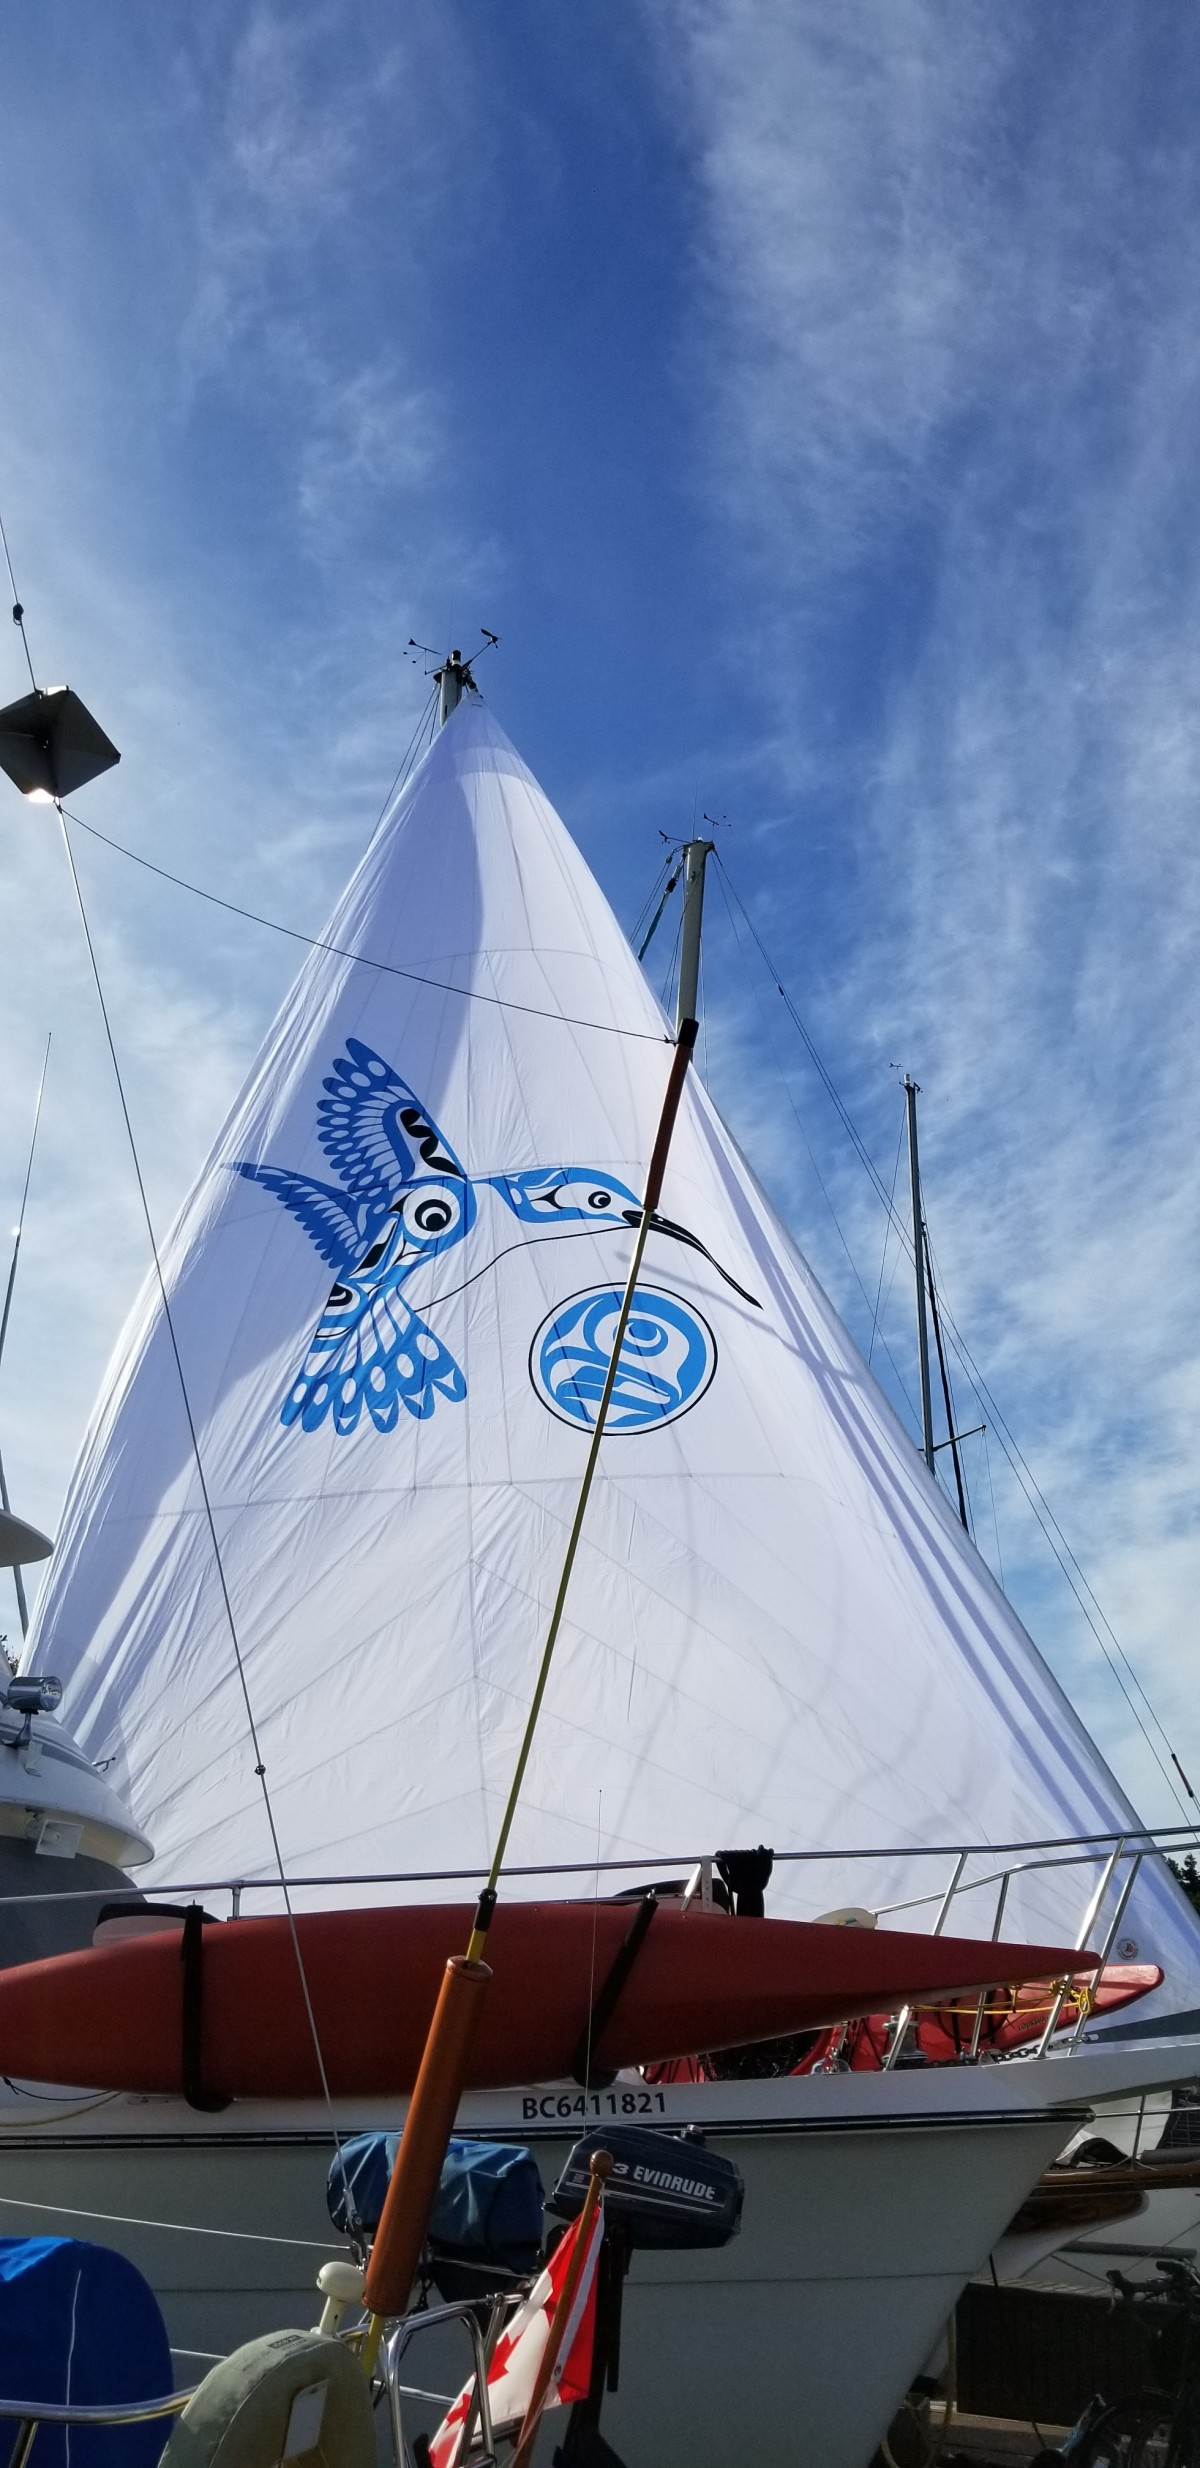 Our new sail and the story of our logo